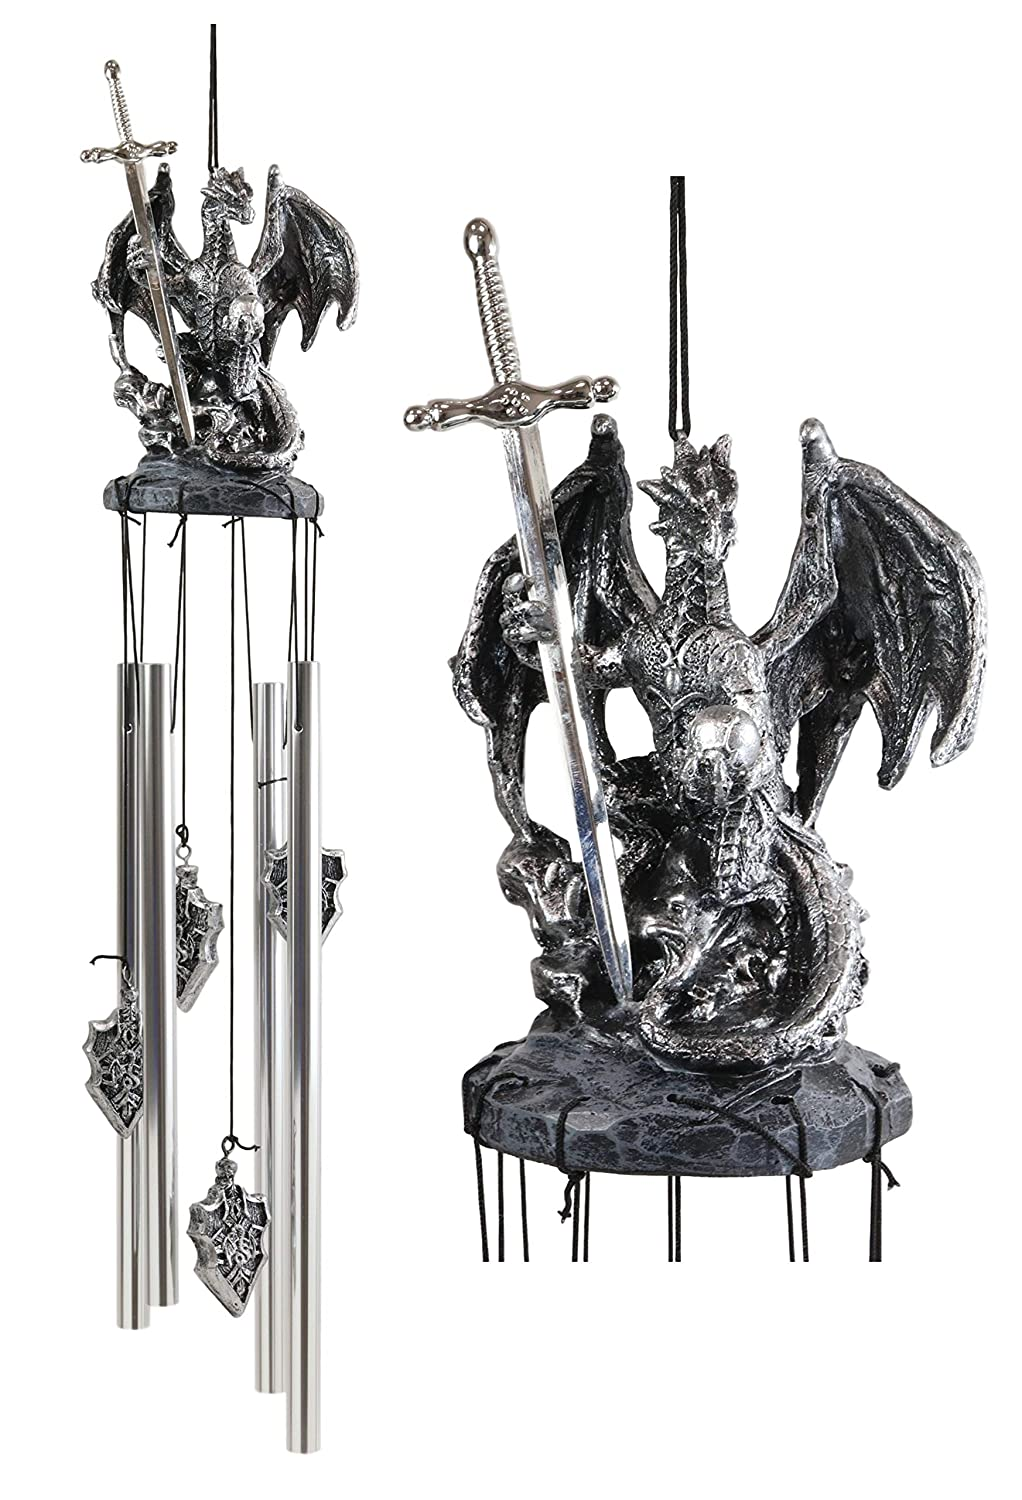 Ebros Gift Medieval Silver Dragon Holding Excalibur Sword and Orb Figurine Crown Top Resonant Wind Chime Garden Patio Home Fantasy Dungeons and Dragons Accent Decor